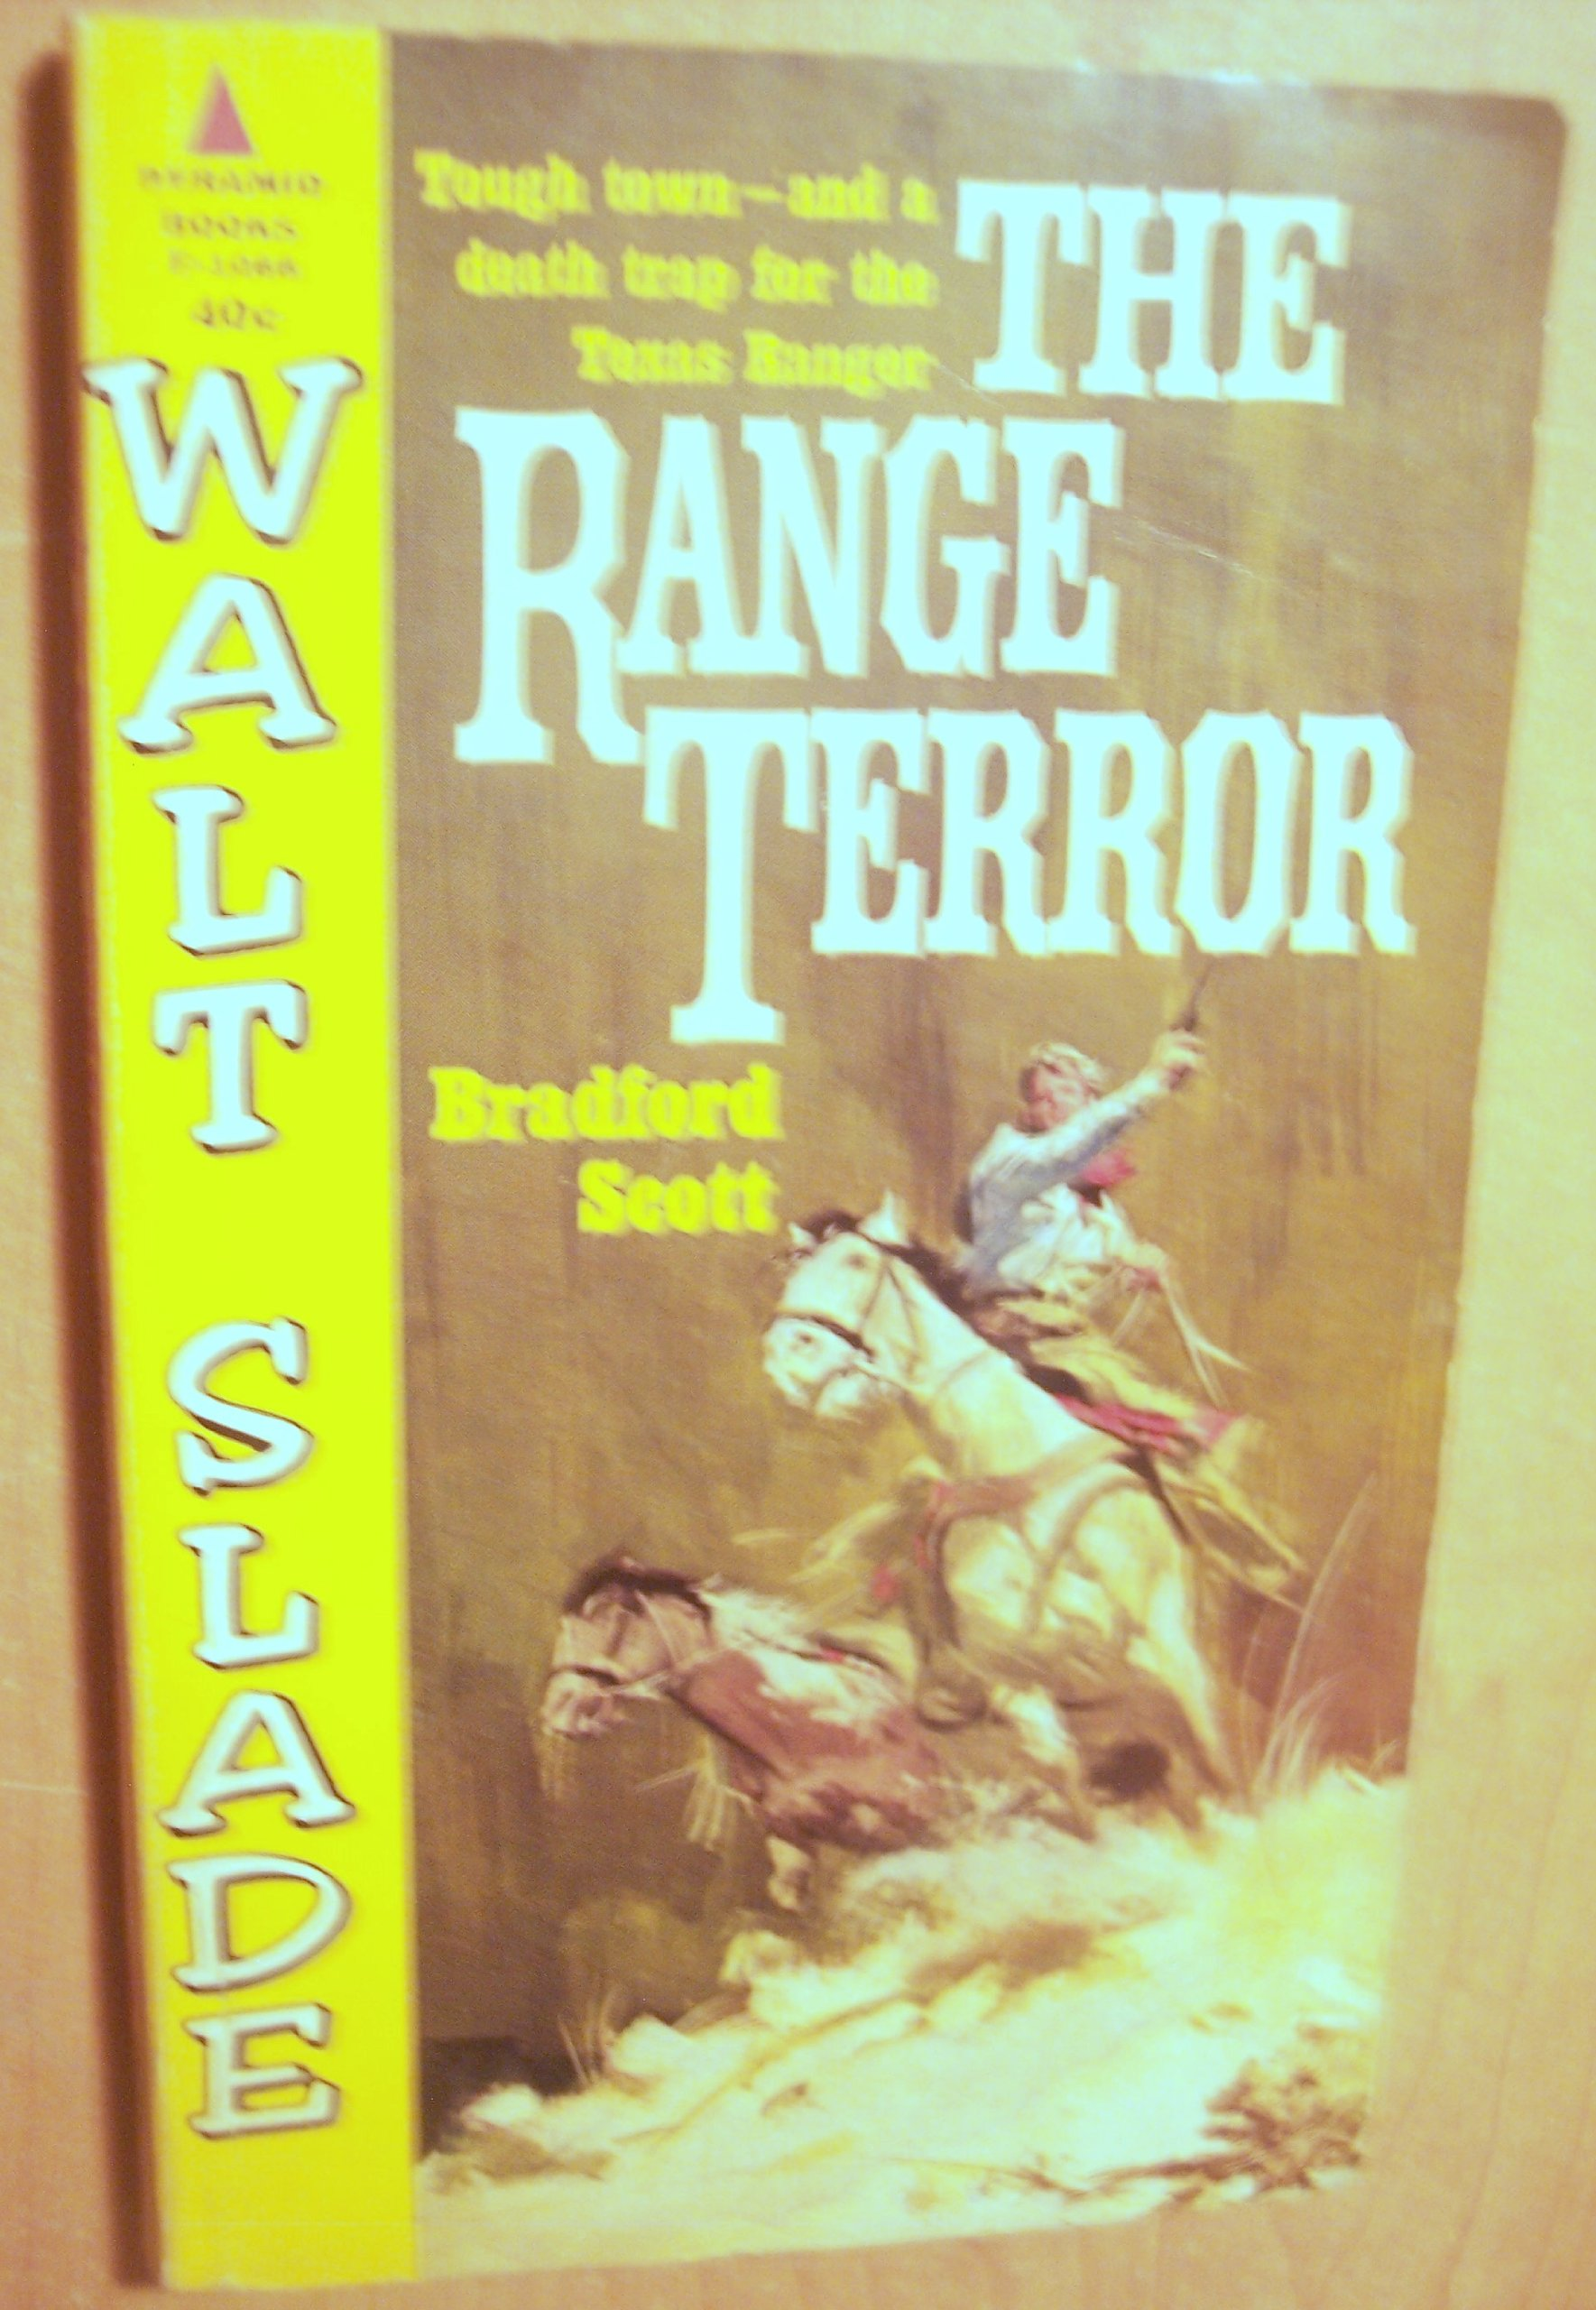 The Range Terror Tough Town and a Death Trap for the Texas Ranger, Scott, Bradford